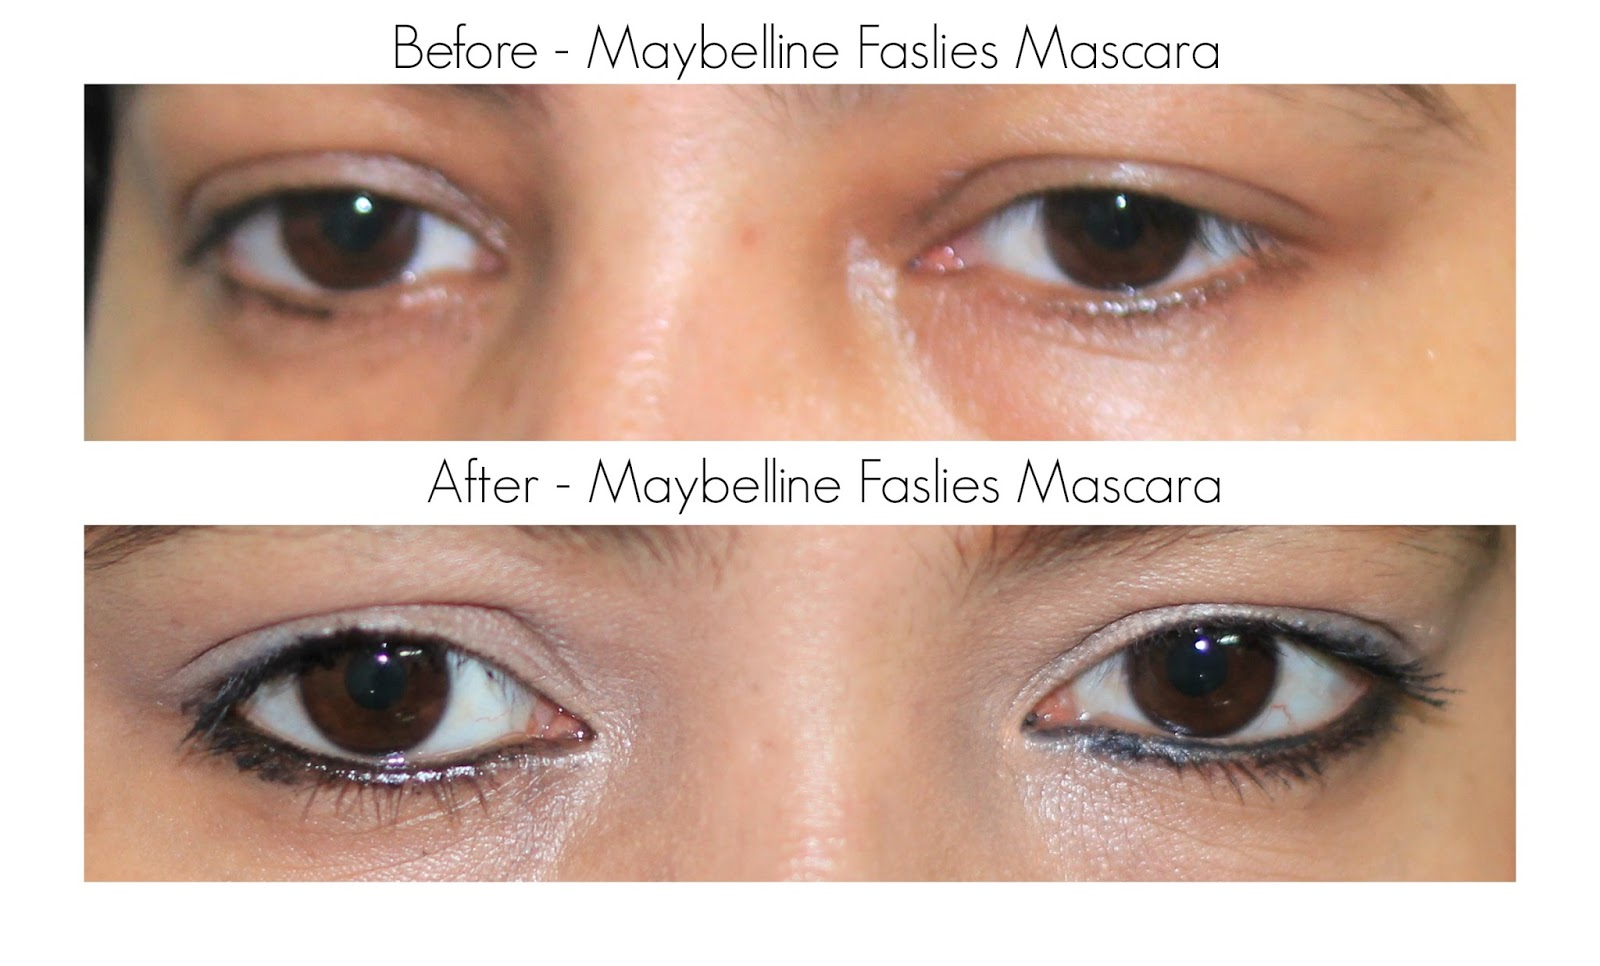 Review | Maybelline Falsies Volume Express Mascara - Does ...